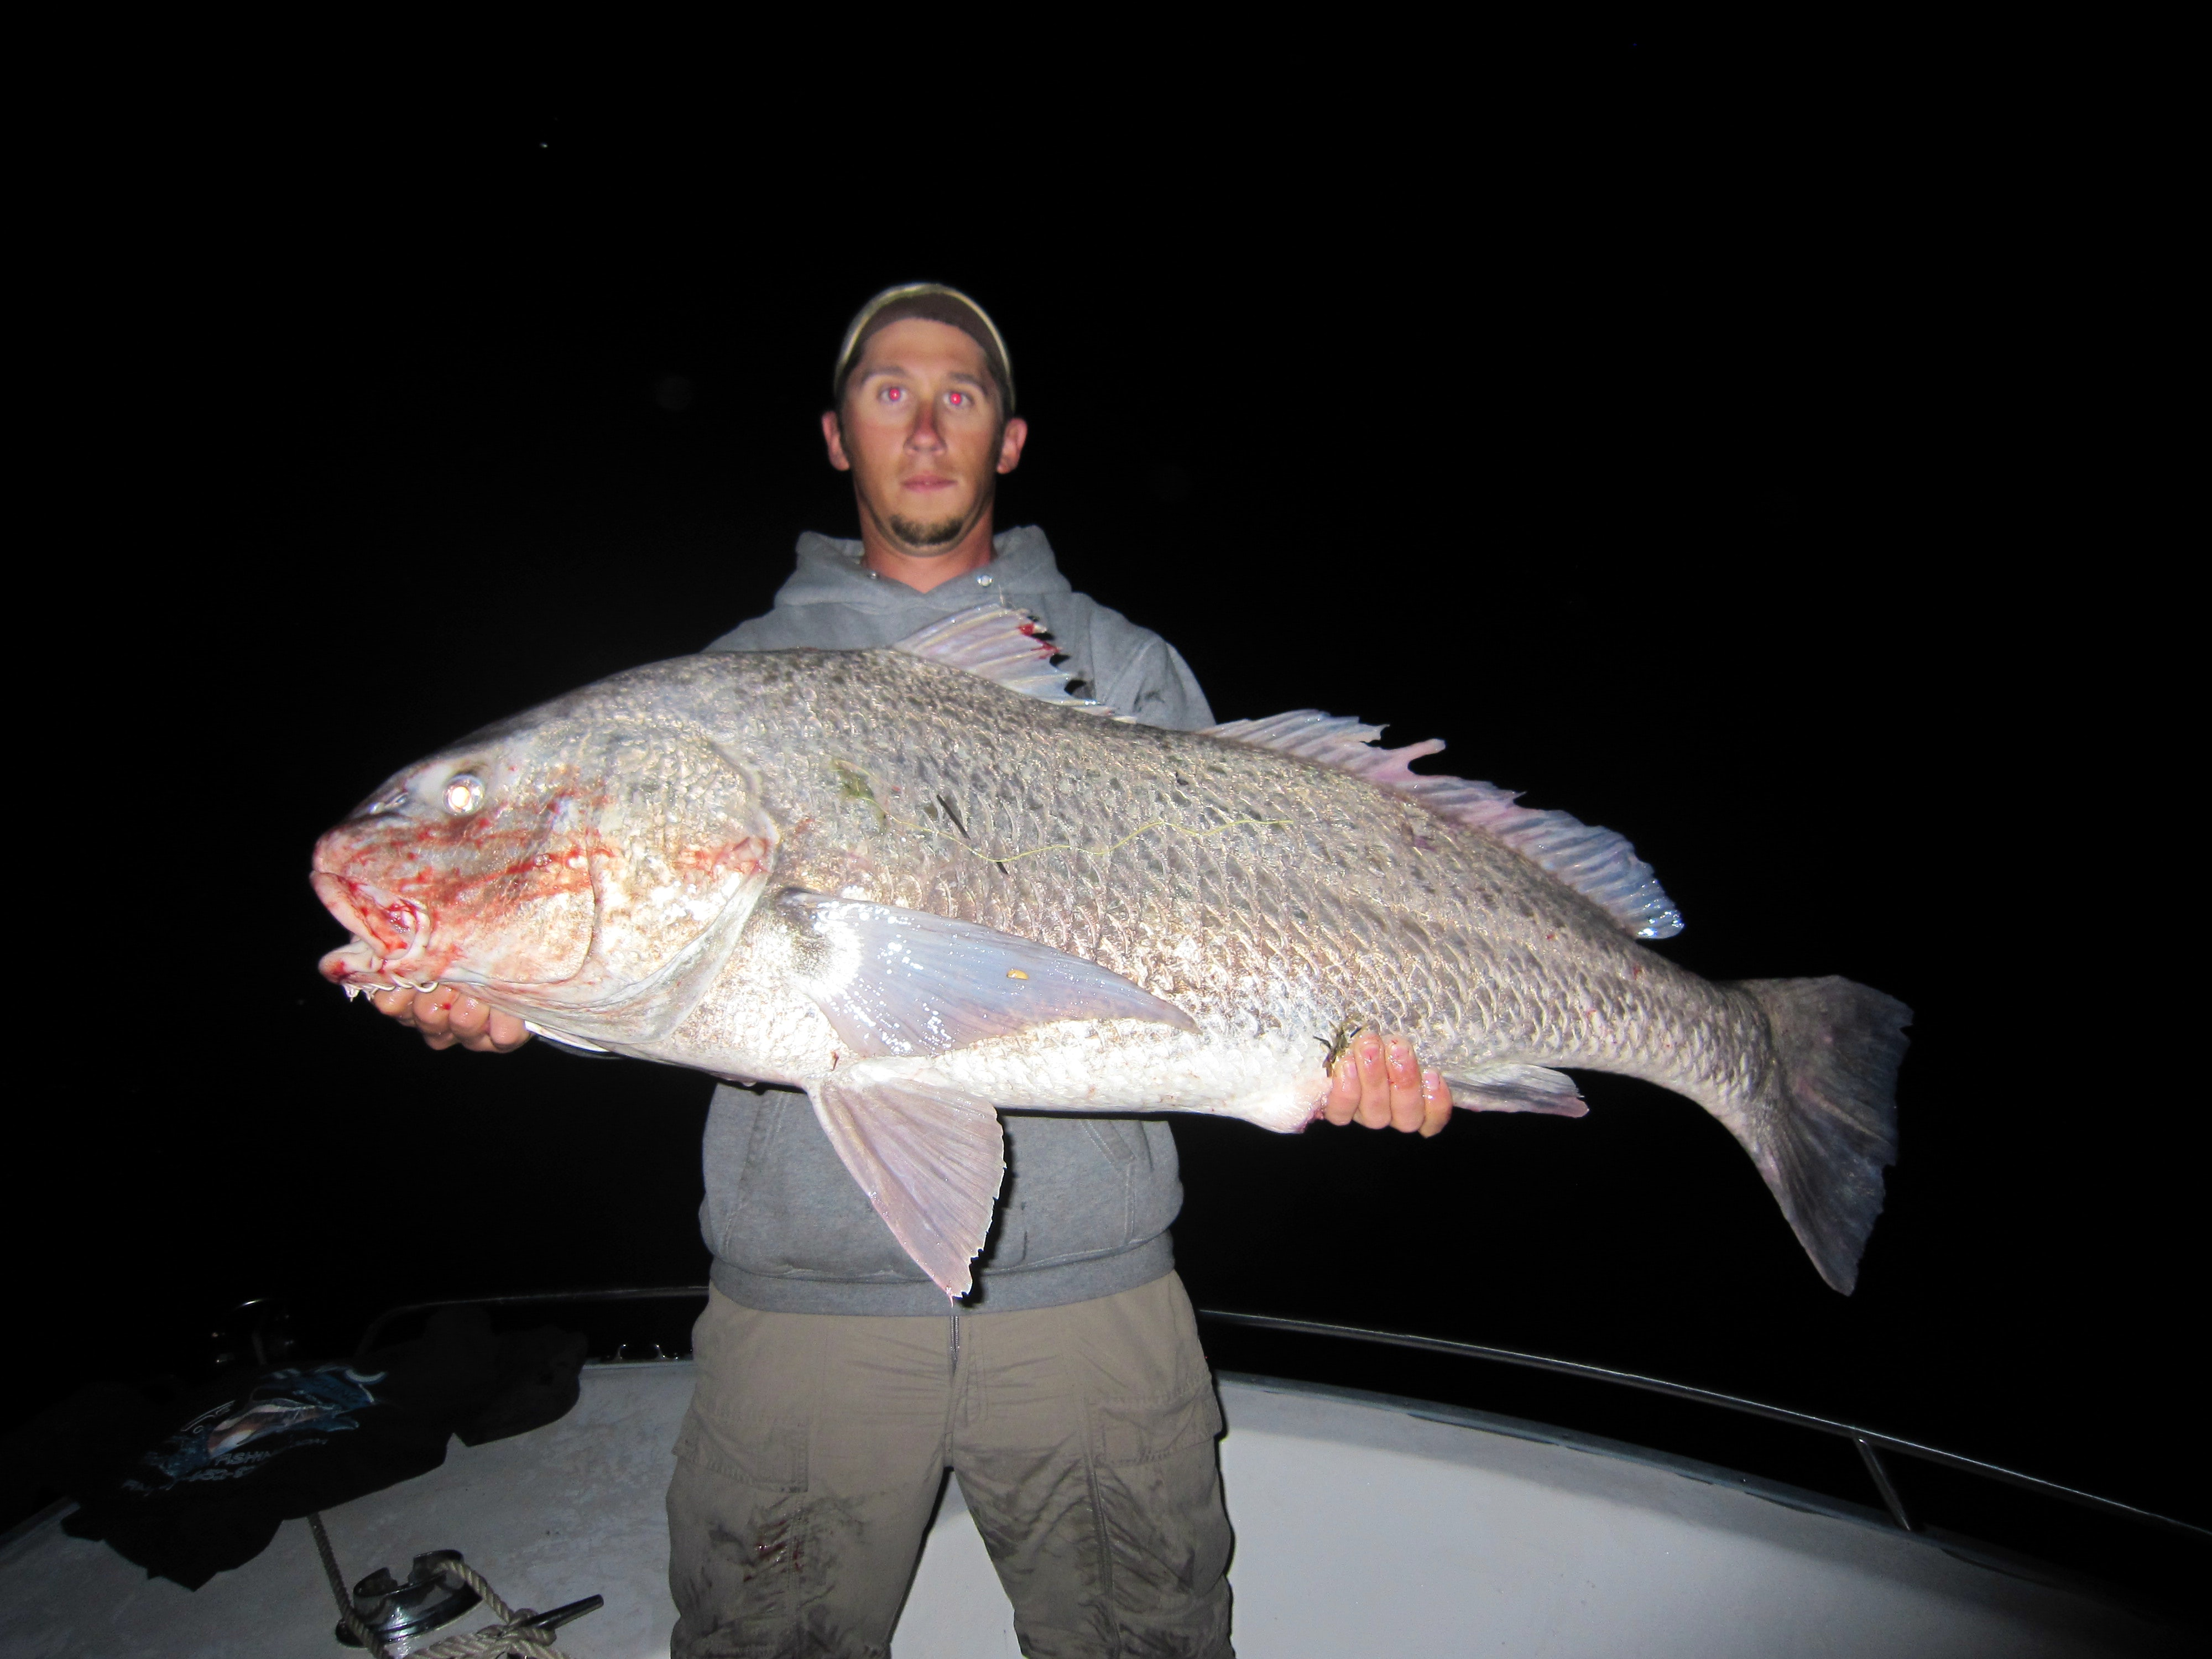 A man poses with a huge drum fish caught in Virginia